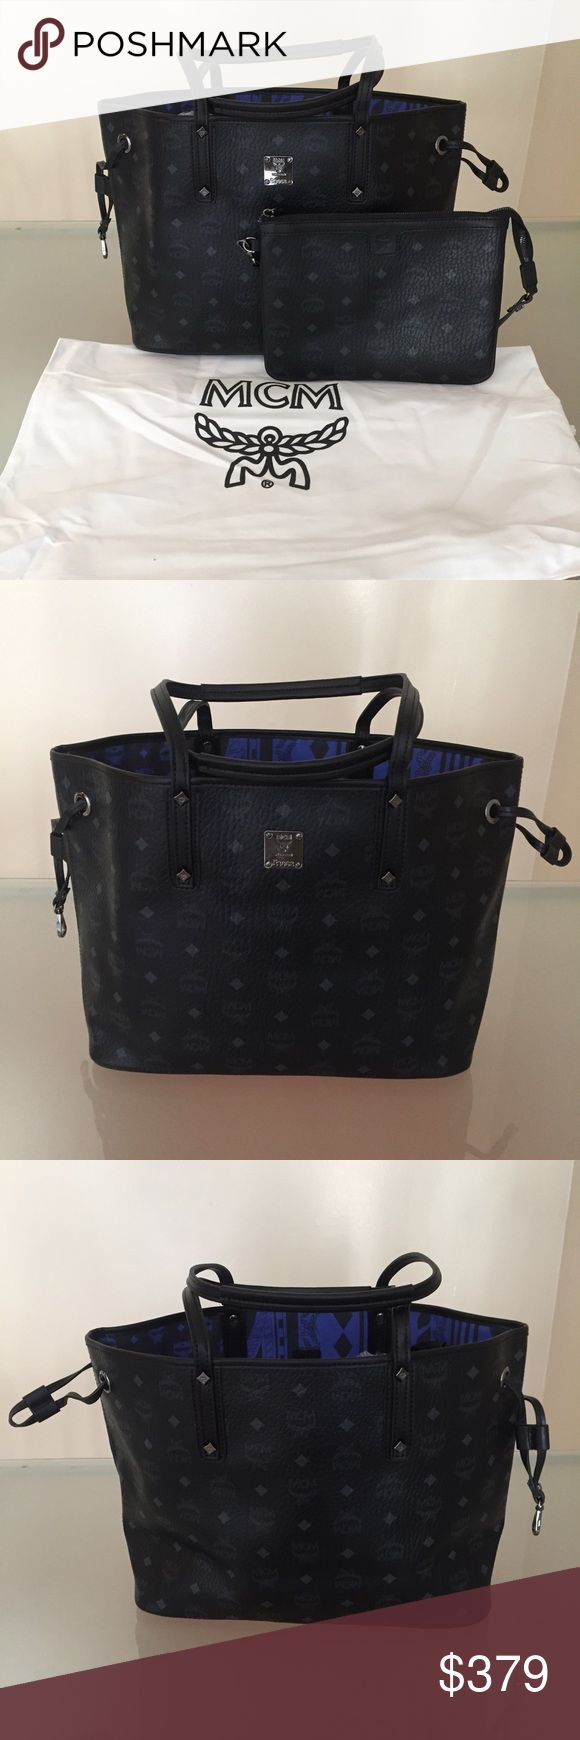 MCM purse tote black reversible handbag authentic, size medium. comes with pouch and authenticity care cards. MCM Bags Totes